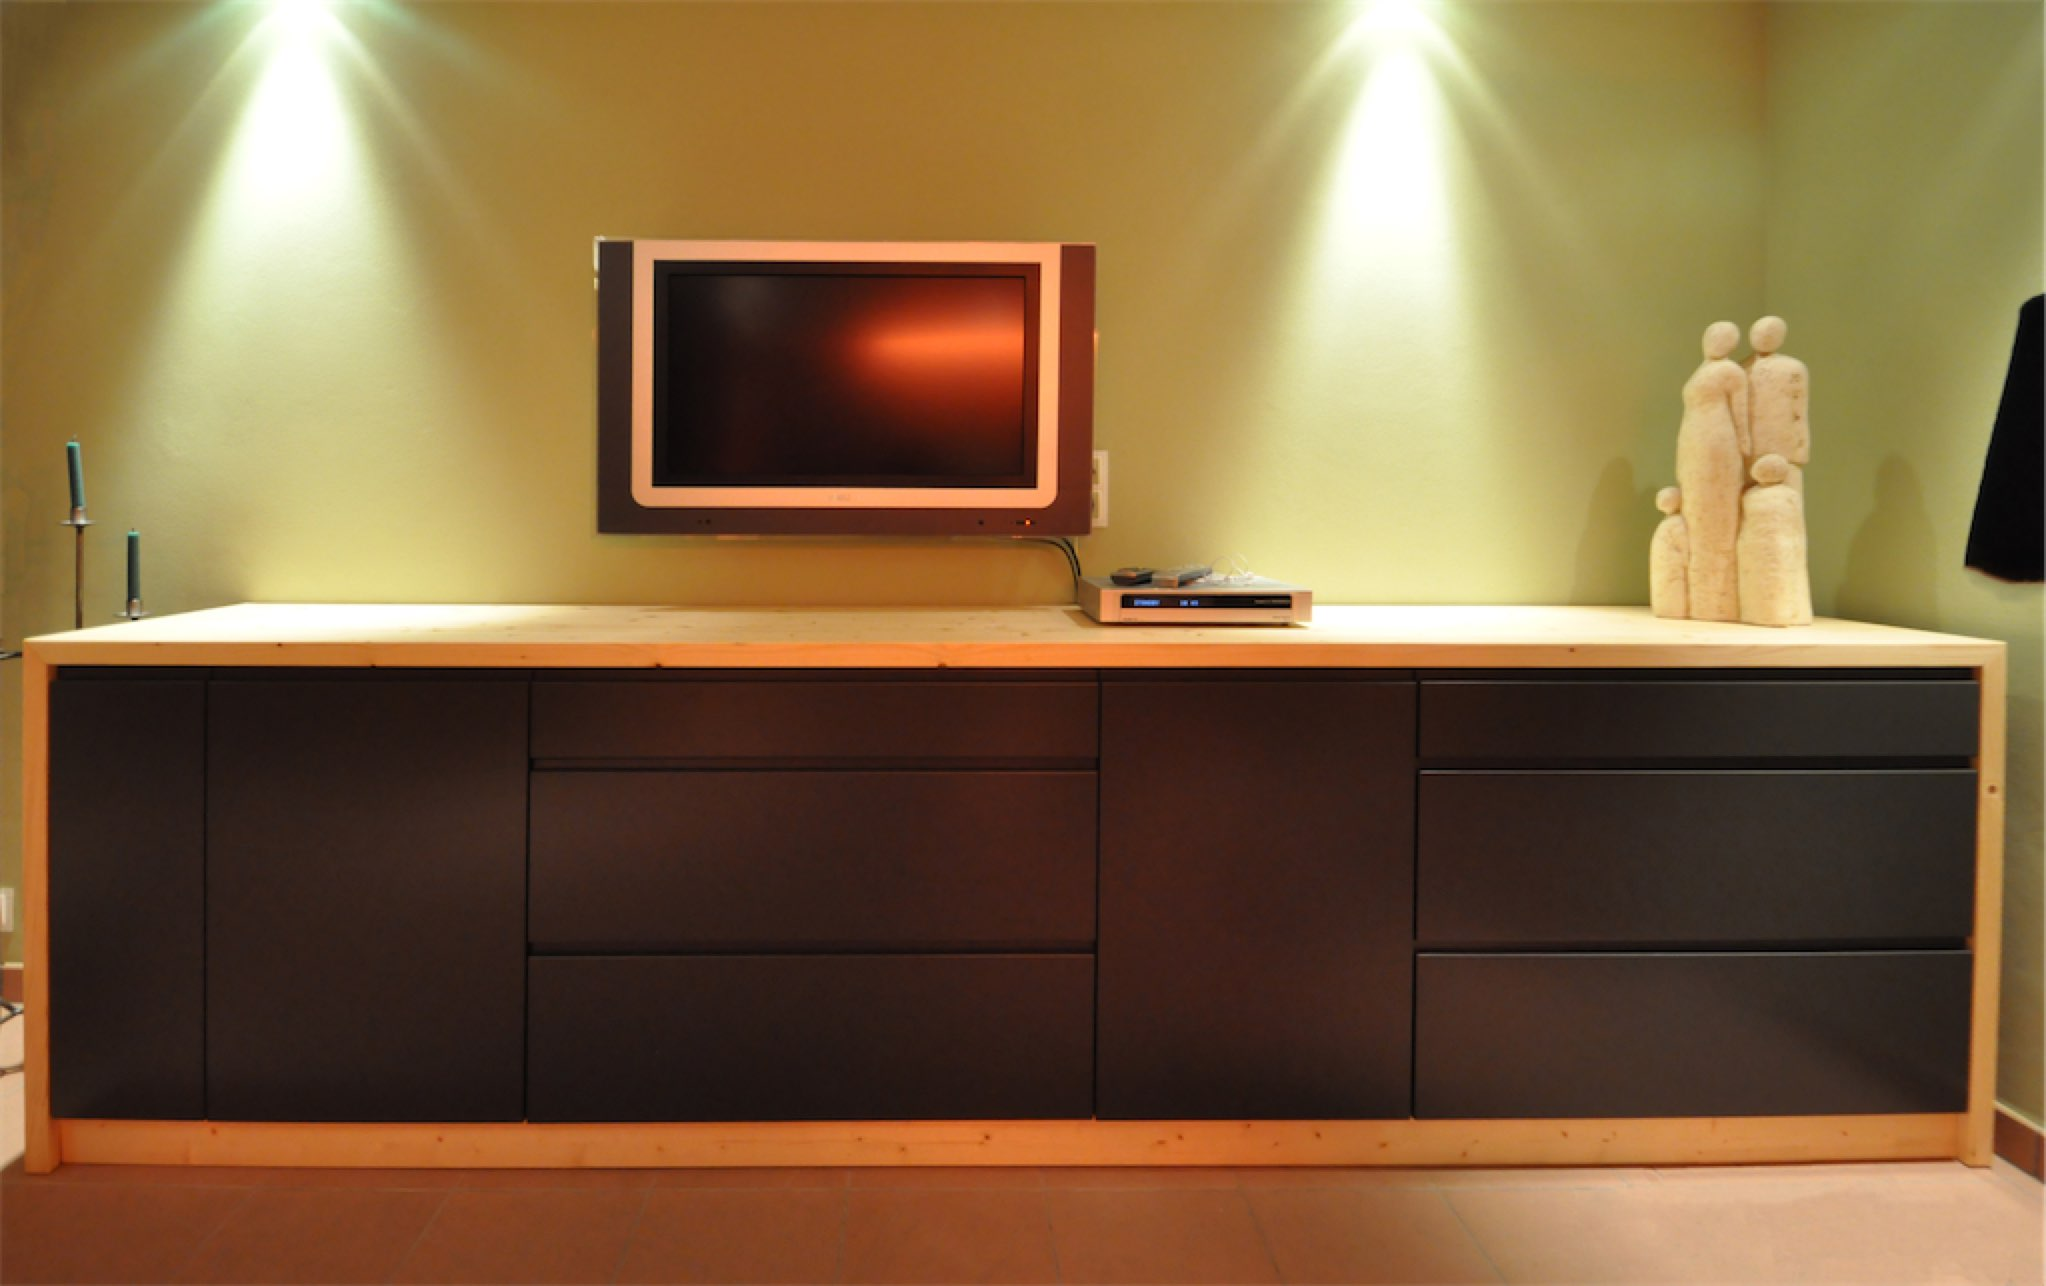 Sideboard in MDF